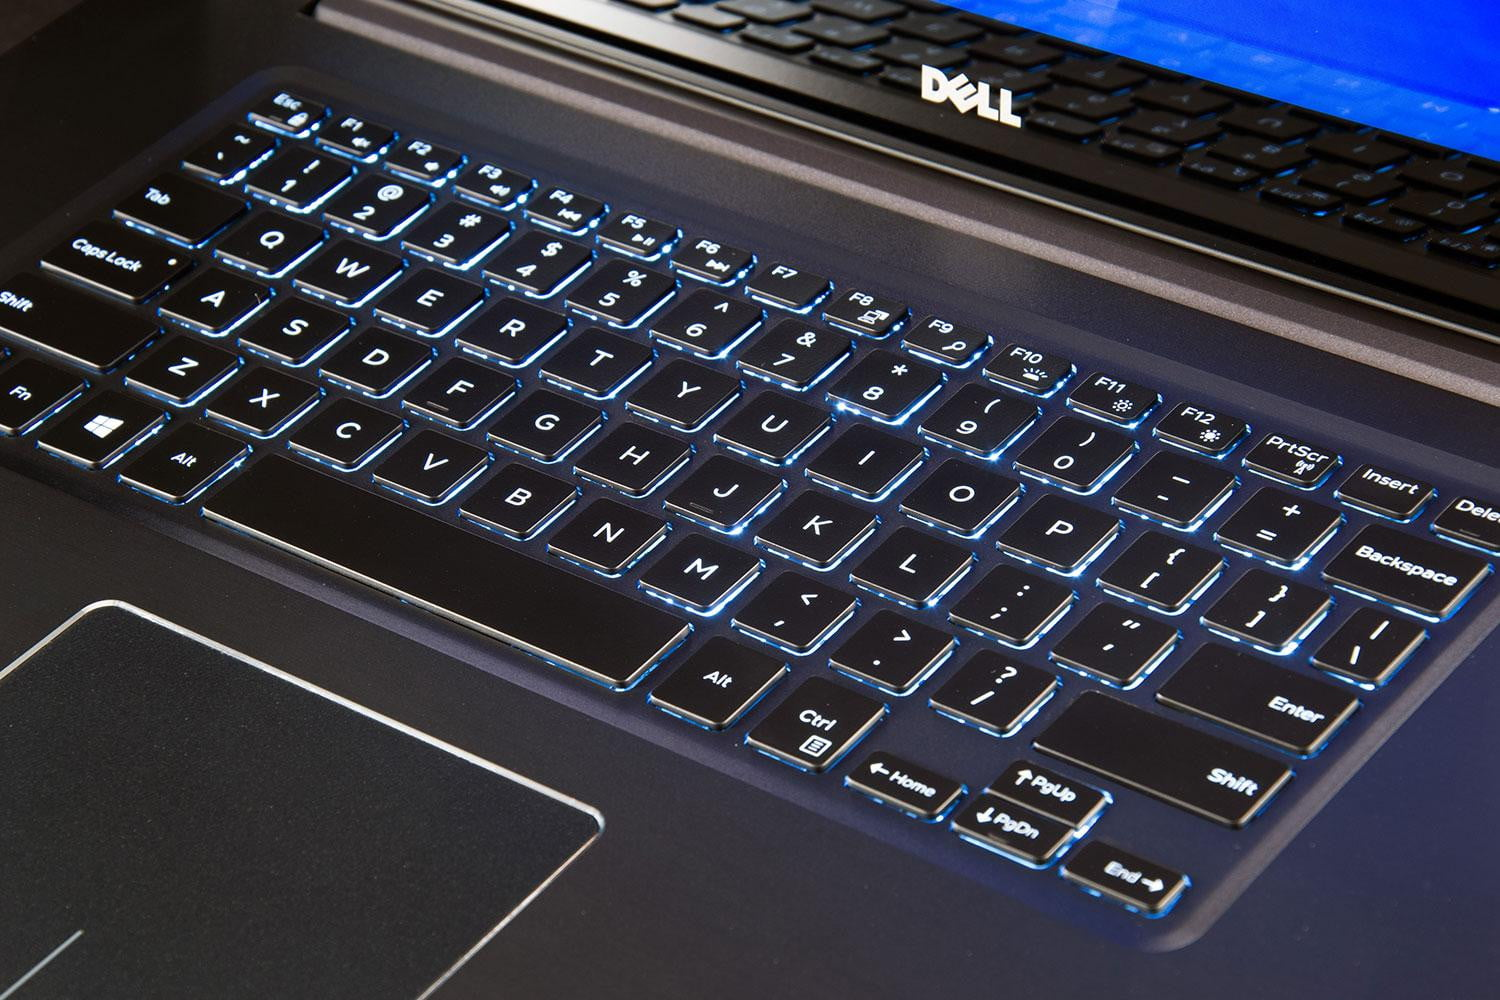 Dell inspiron 15 7000 with 4k display review digital trends for Window keyboard